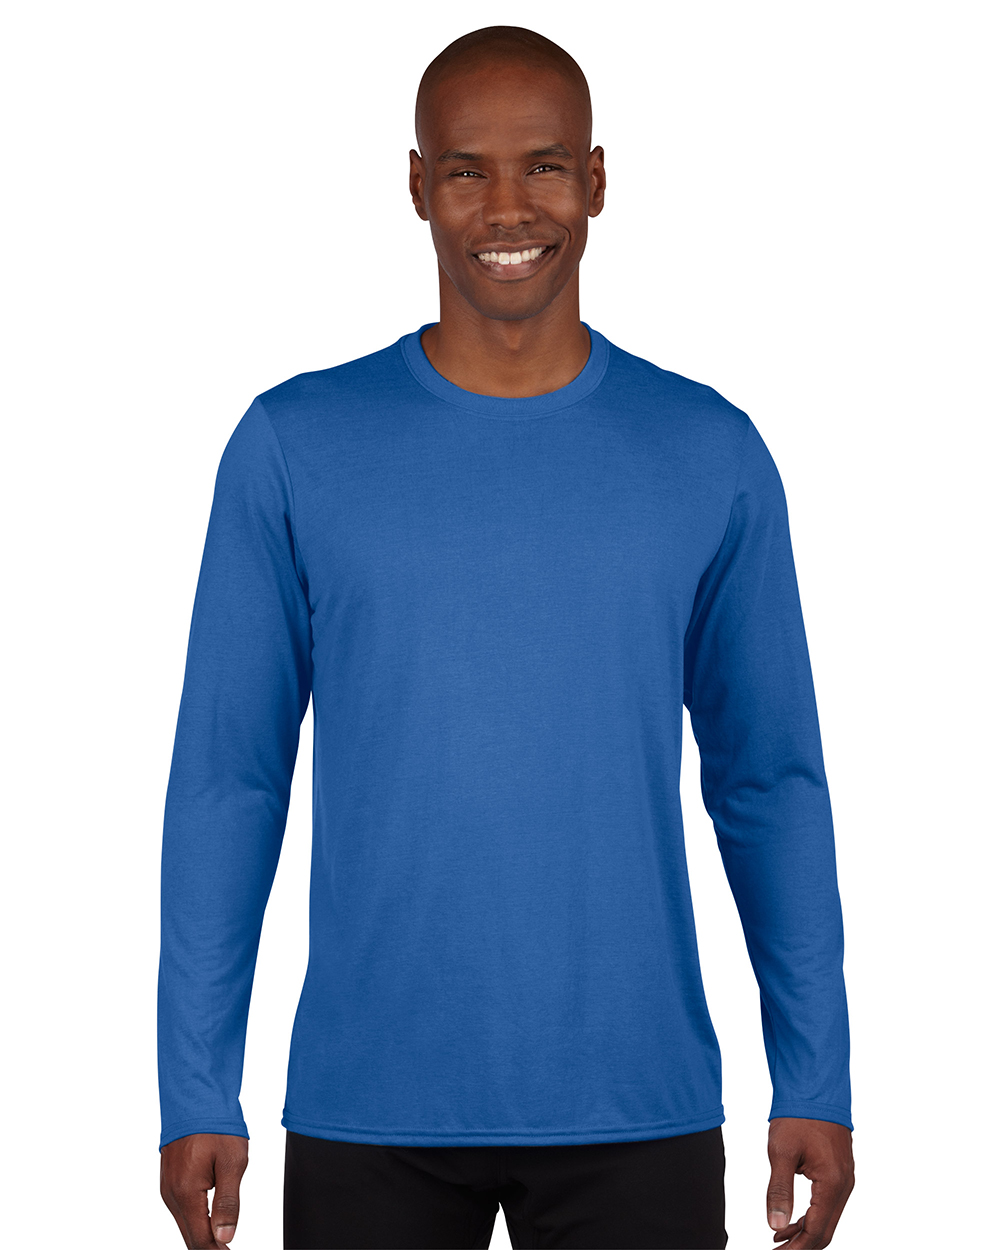 Gildan 42400     Adult Long Sleeve Performance     4.5 oz. 100% Polyester (Cotton Feel)